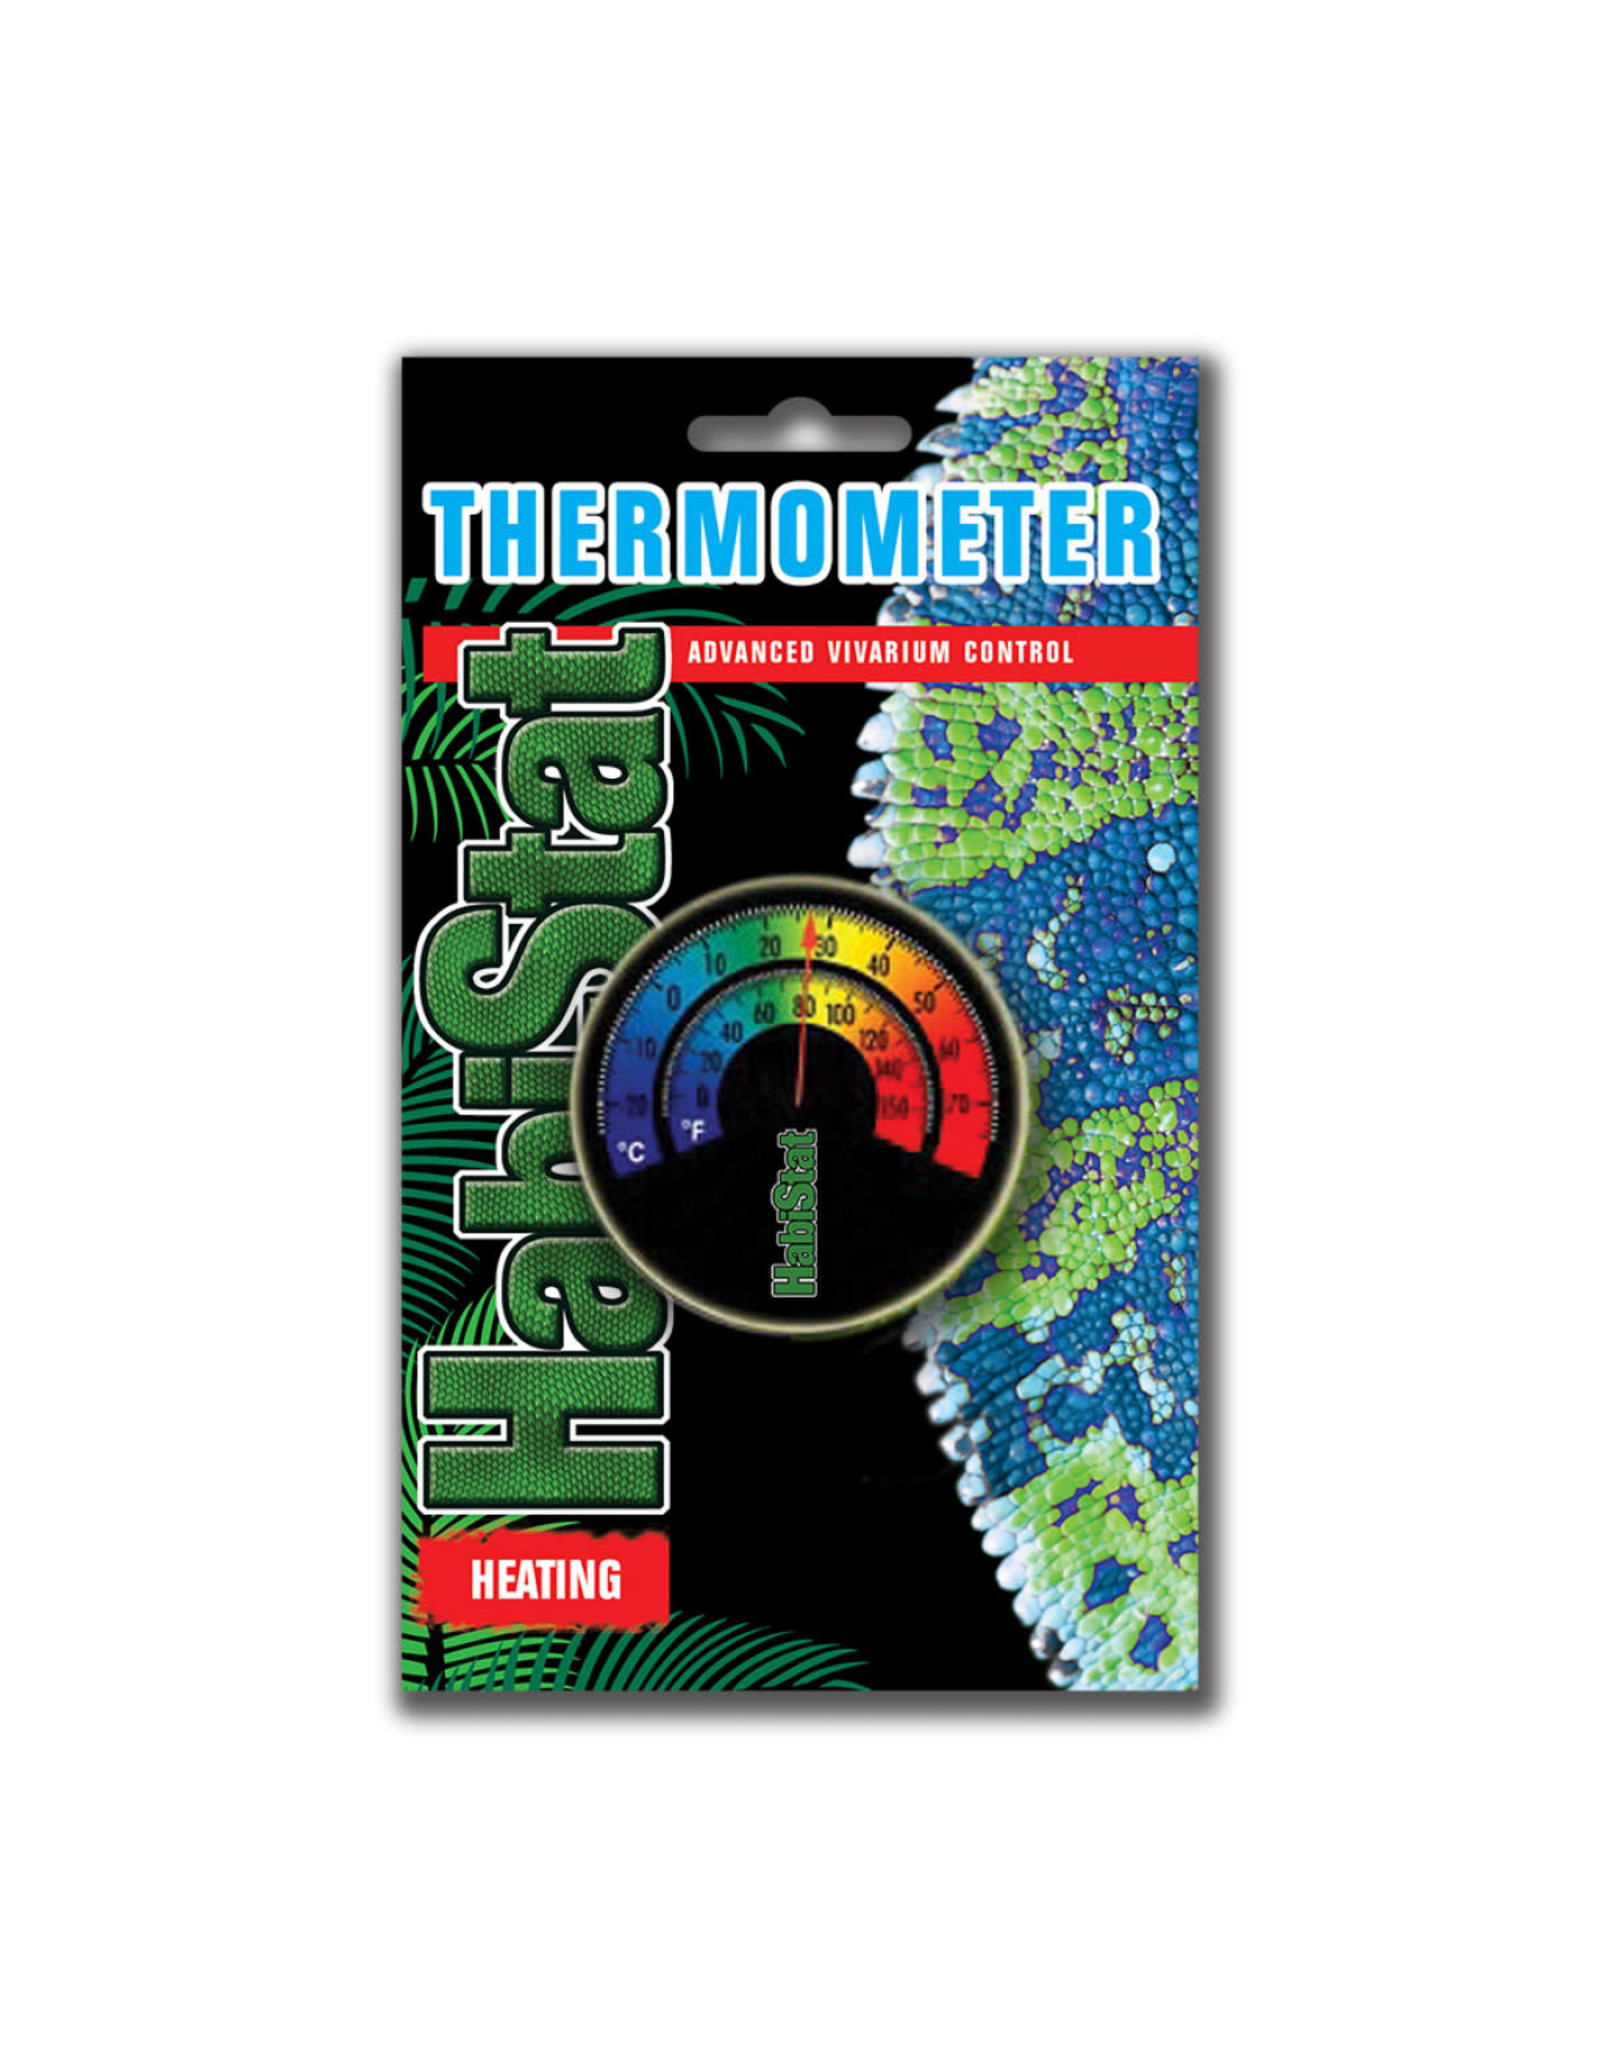 Habistat Habistat Dial Thermometer